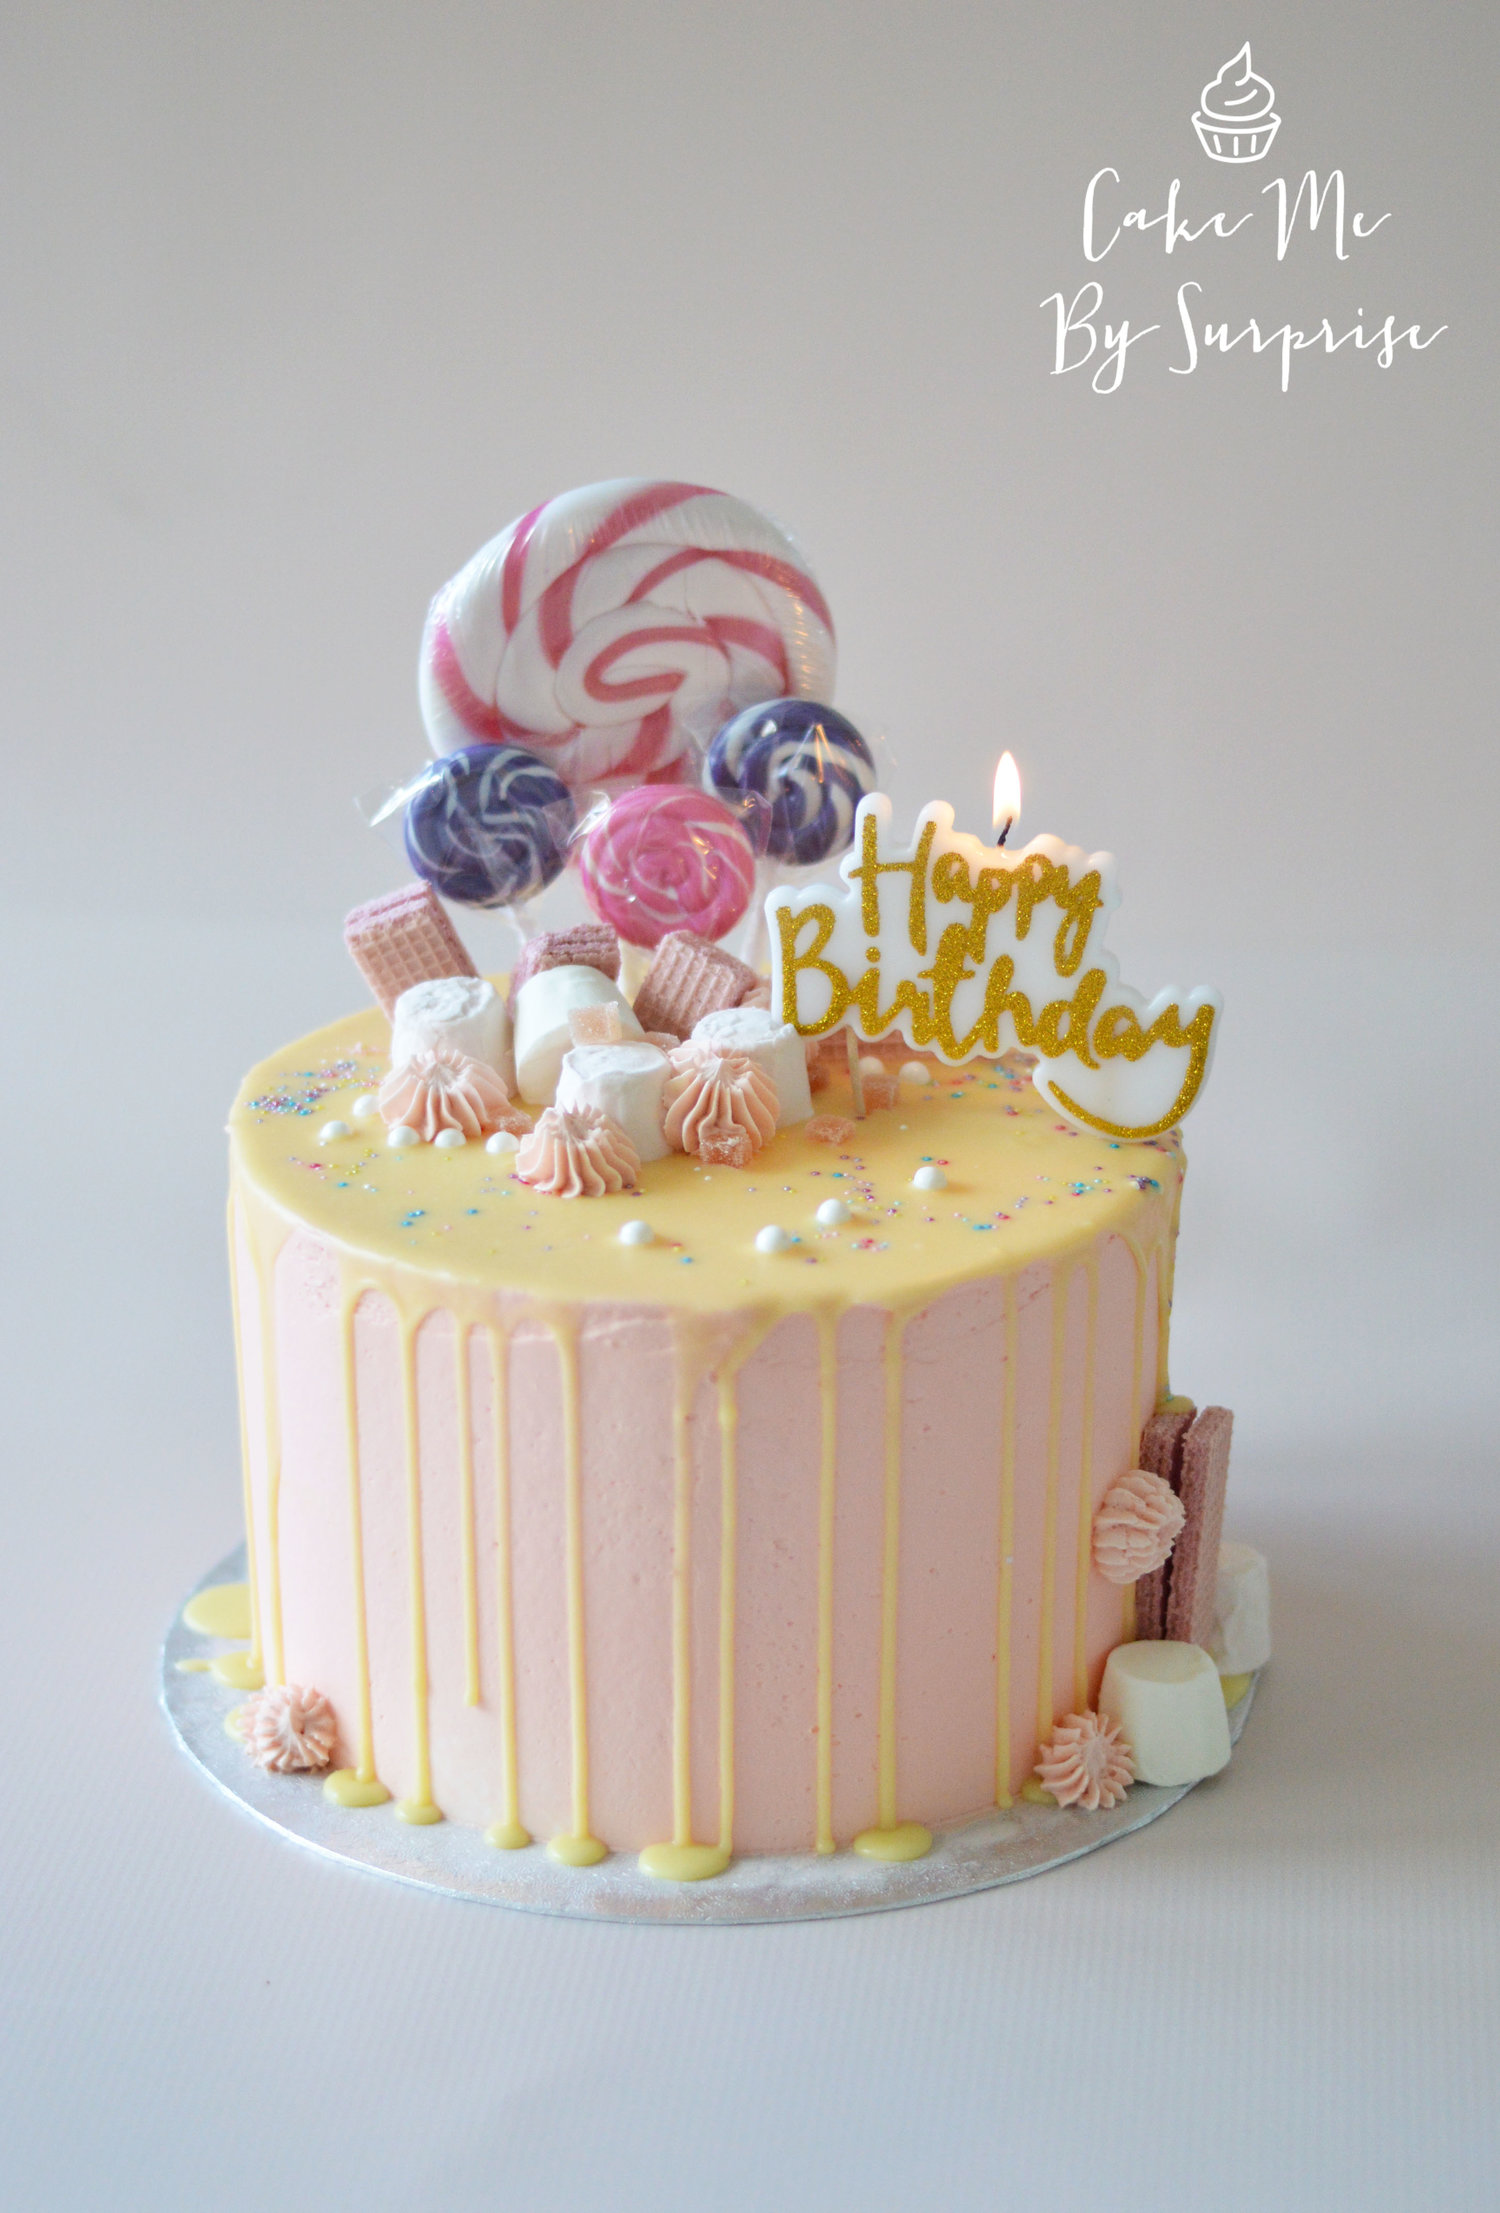 Sweet Shop Birthday Cake — Cake Me By Surprise